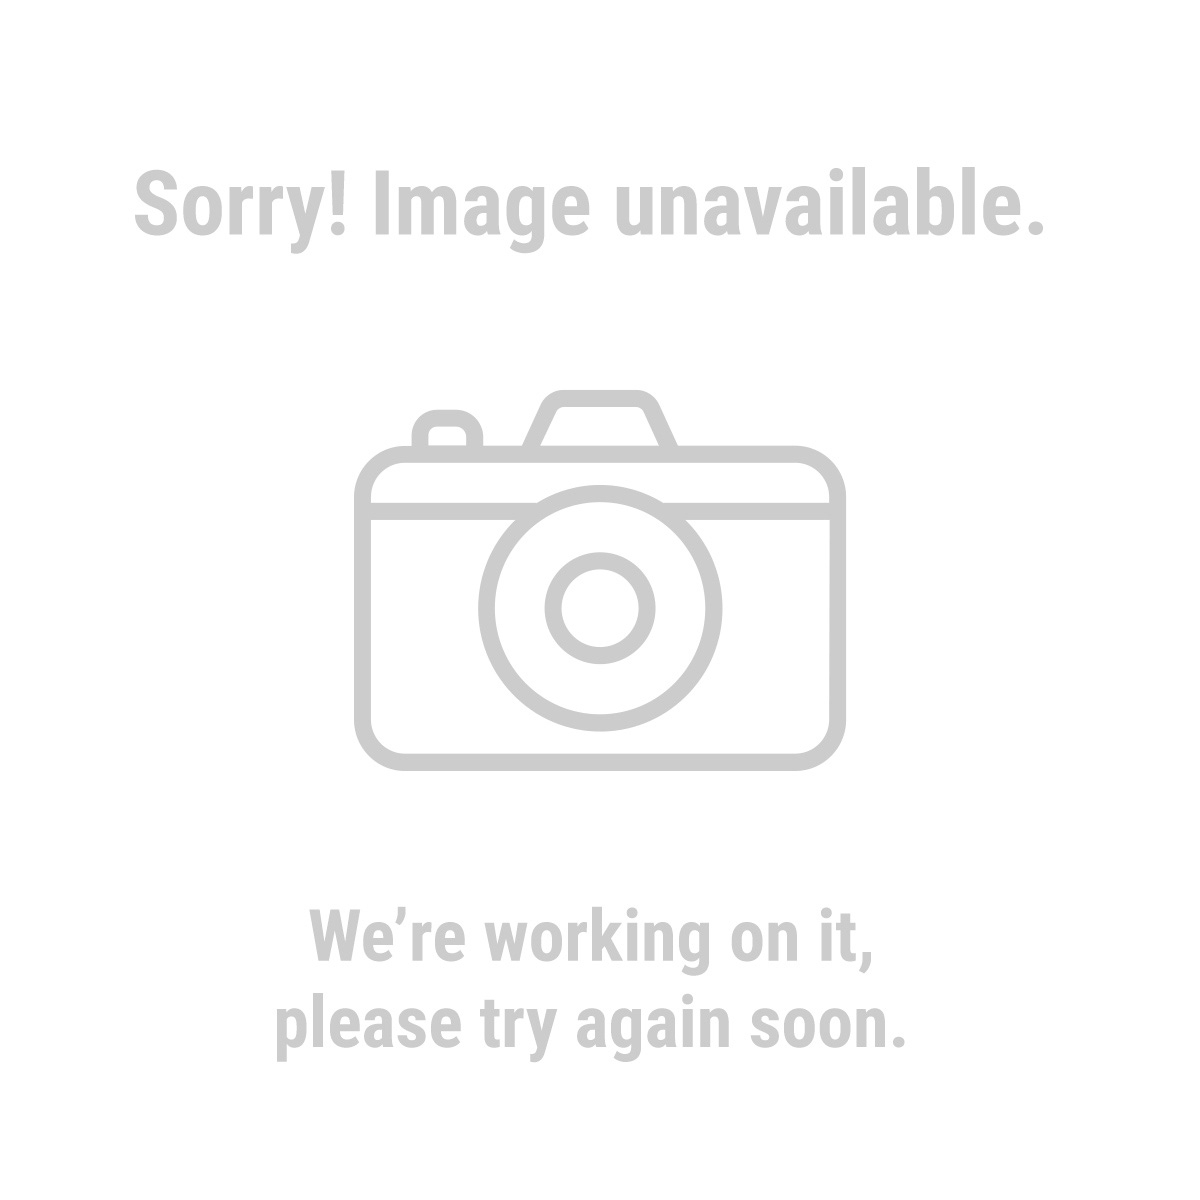 HFT® 60471 25 ft. x 53 ft. 8 in. Blue All Purpose/Weather Resistant Tarp